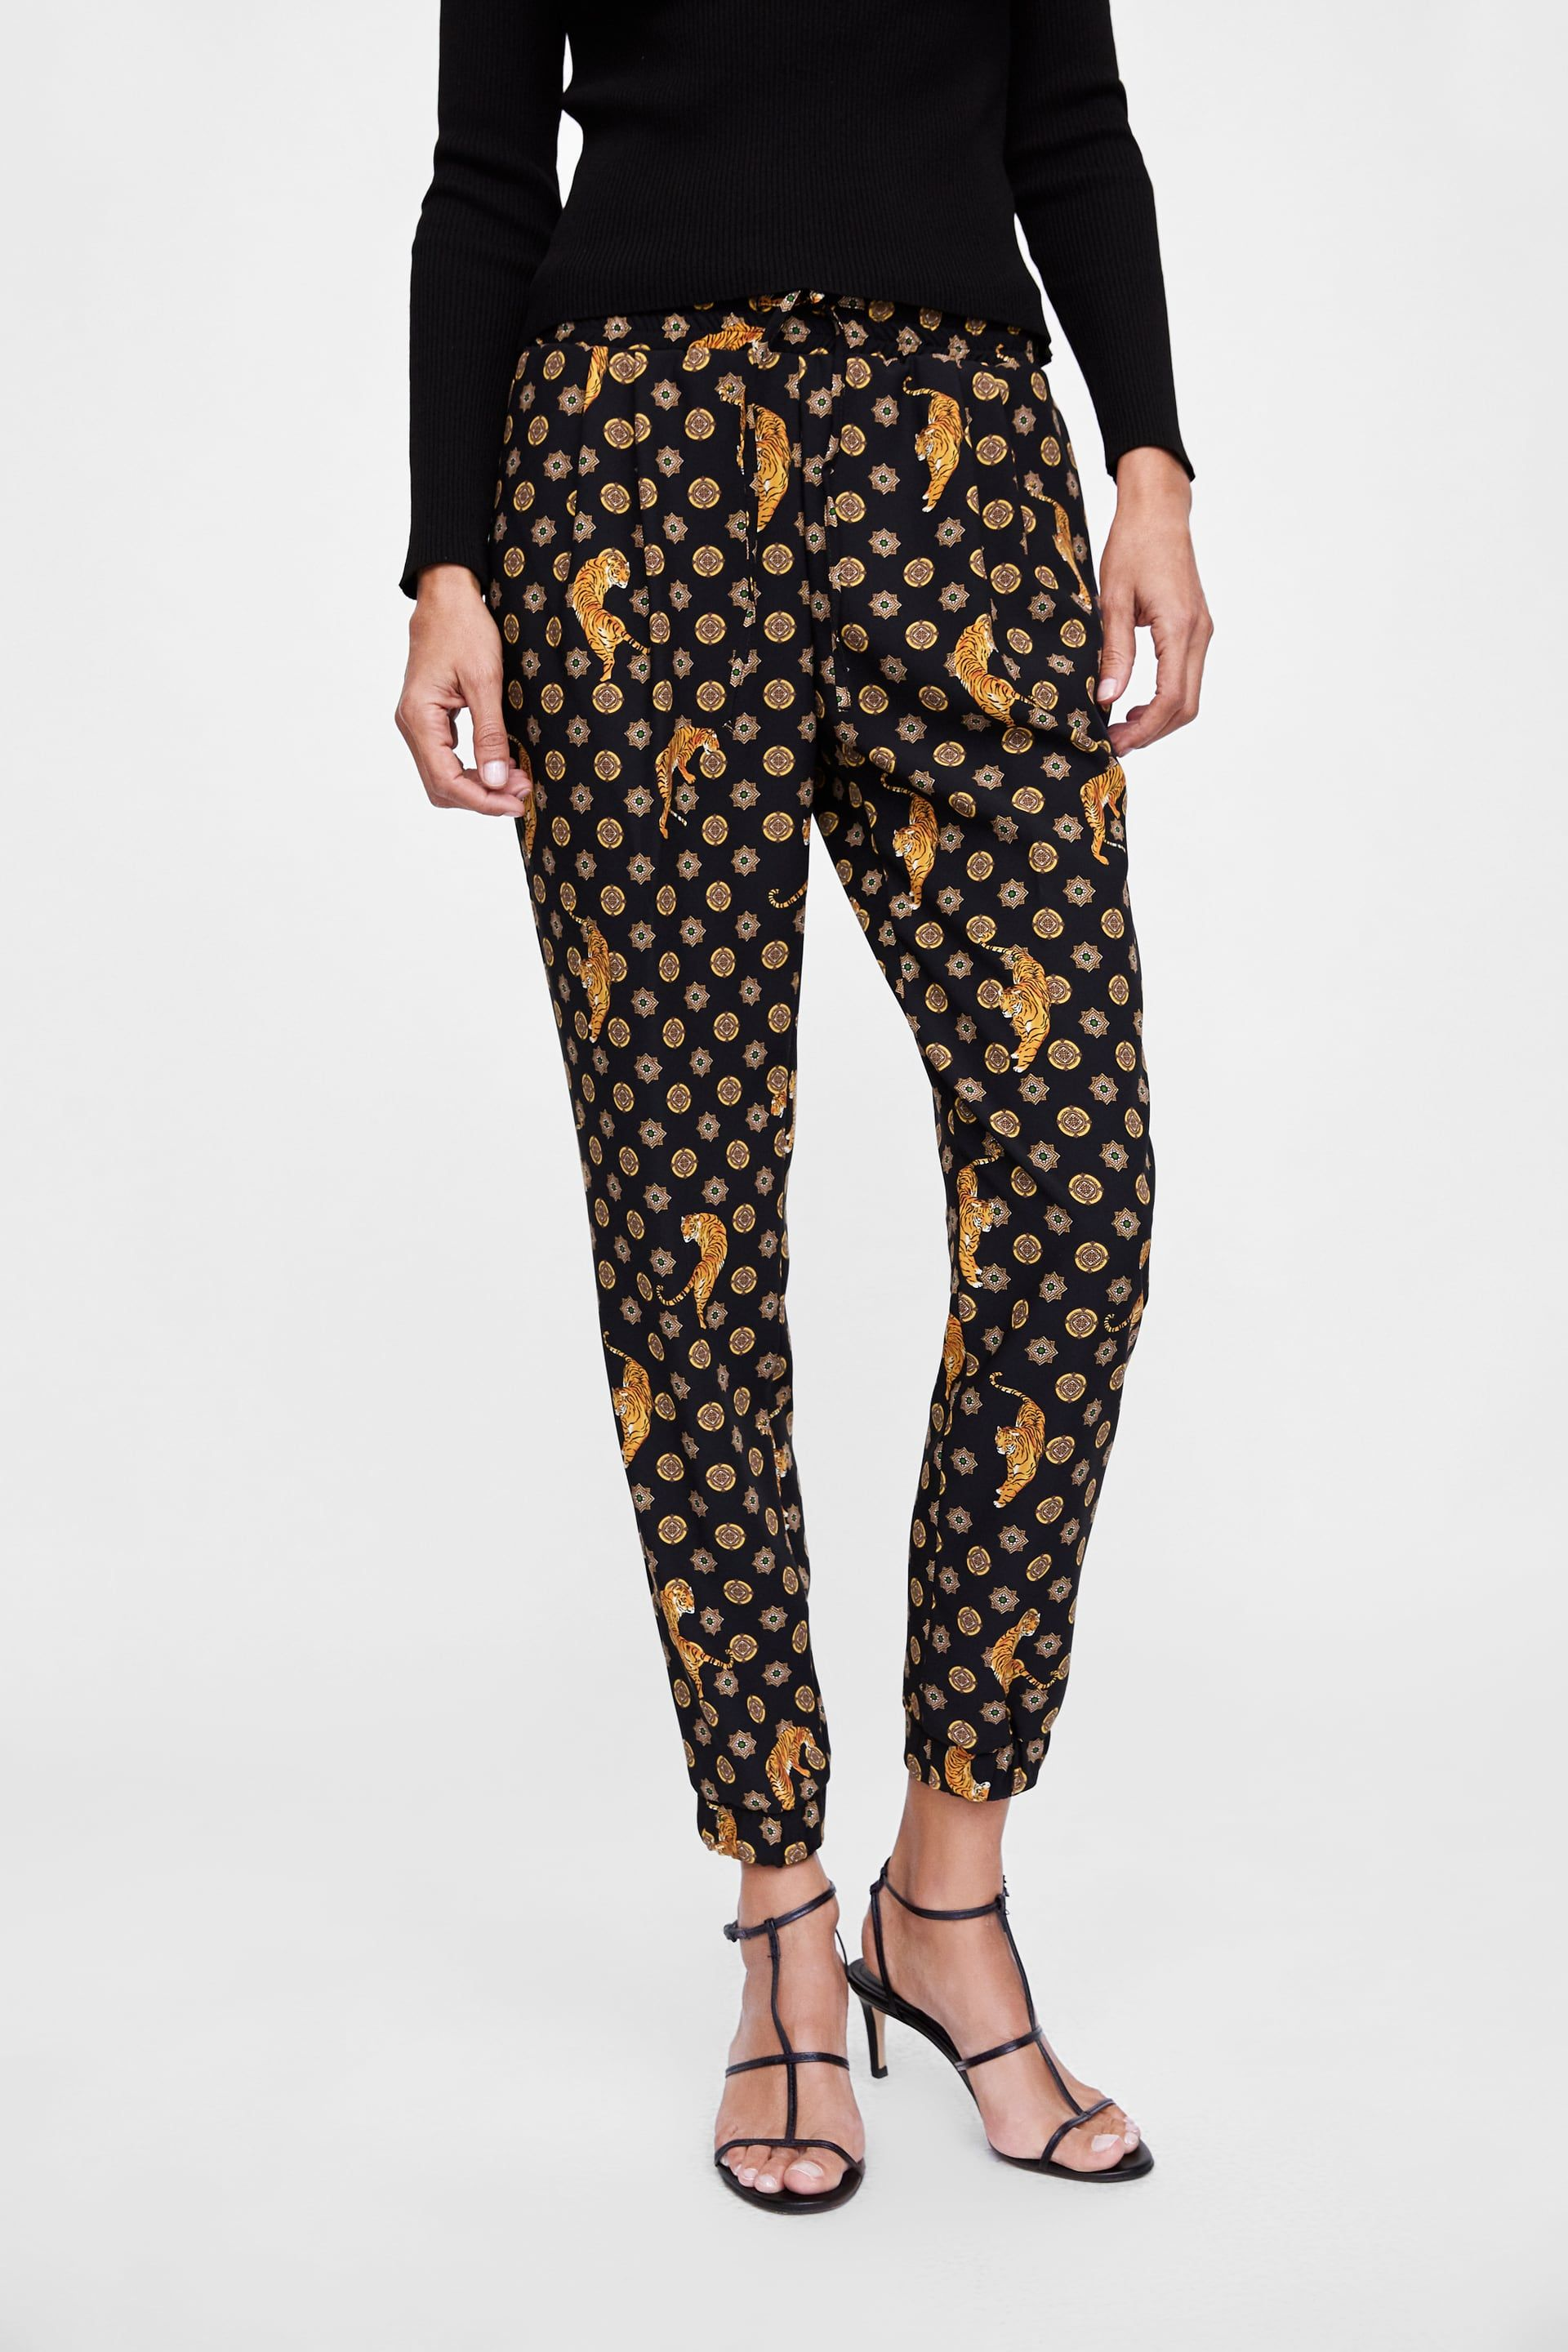 fb001df9 Image 5 of TIGER PRINTED PANTS from Zara | Work Clothes | Printed ...